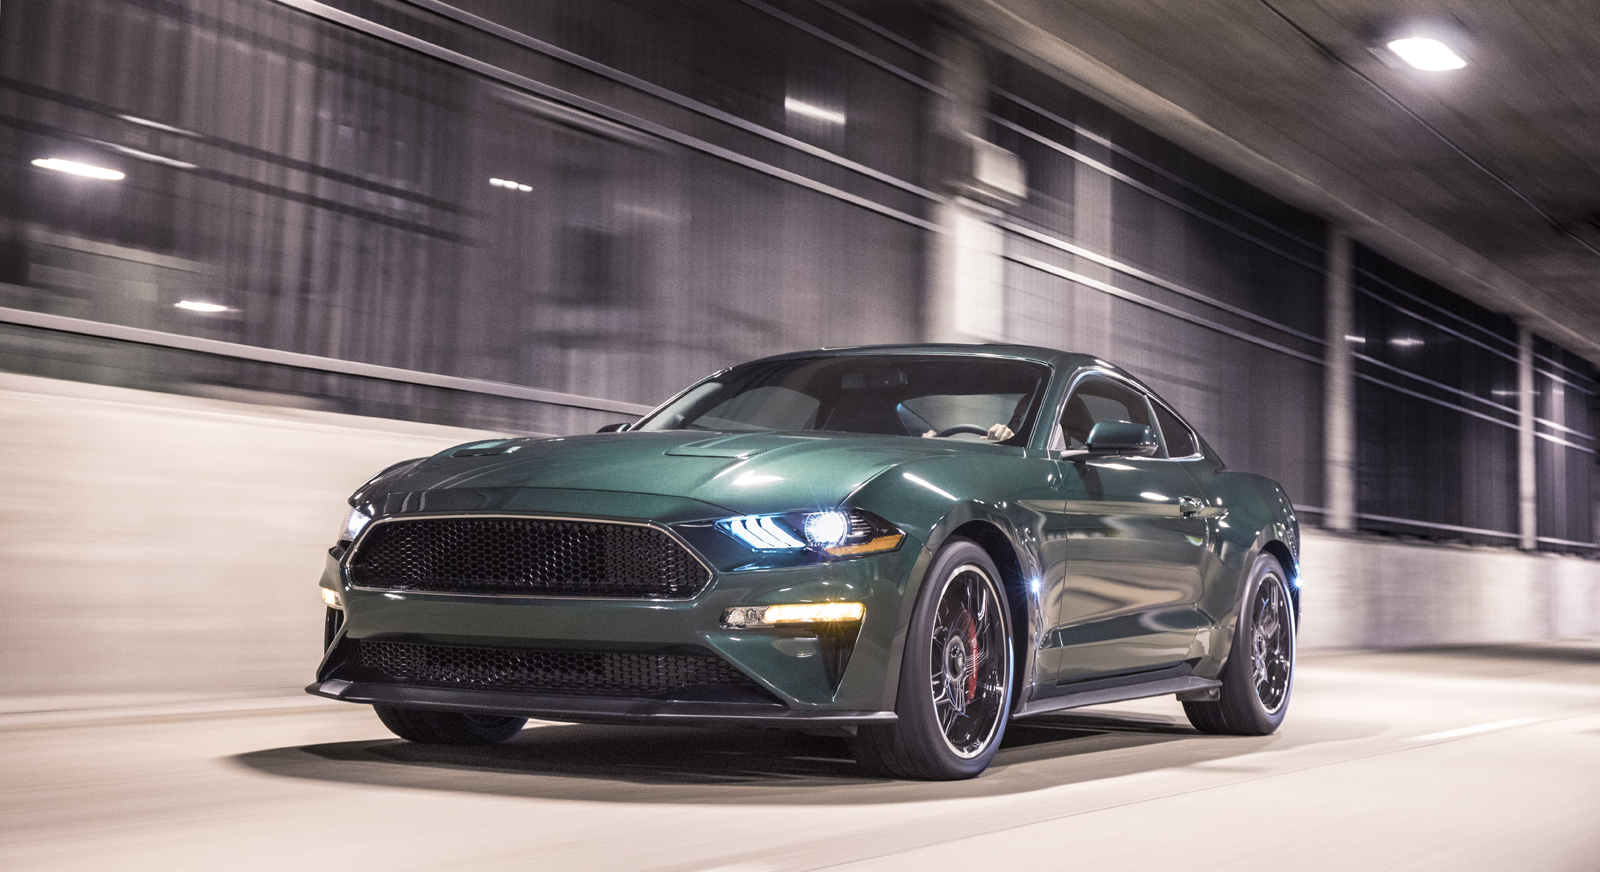 2019 mustang bullitt races into detroit with sinister looks and 475 hp v8 news. Black Bedroom Furniture Sets. Home Design Ideas